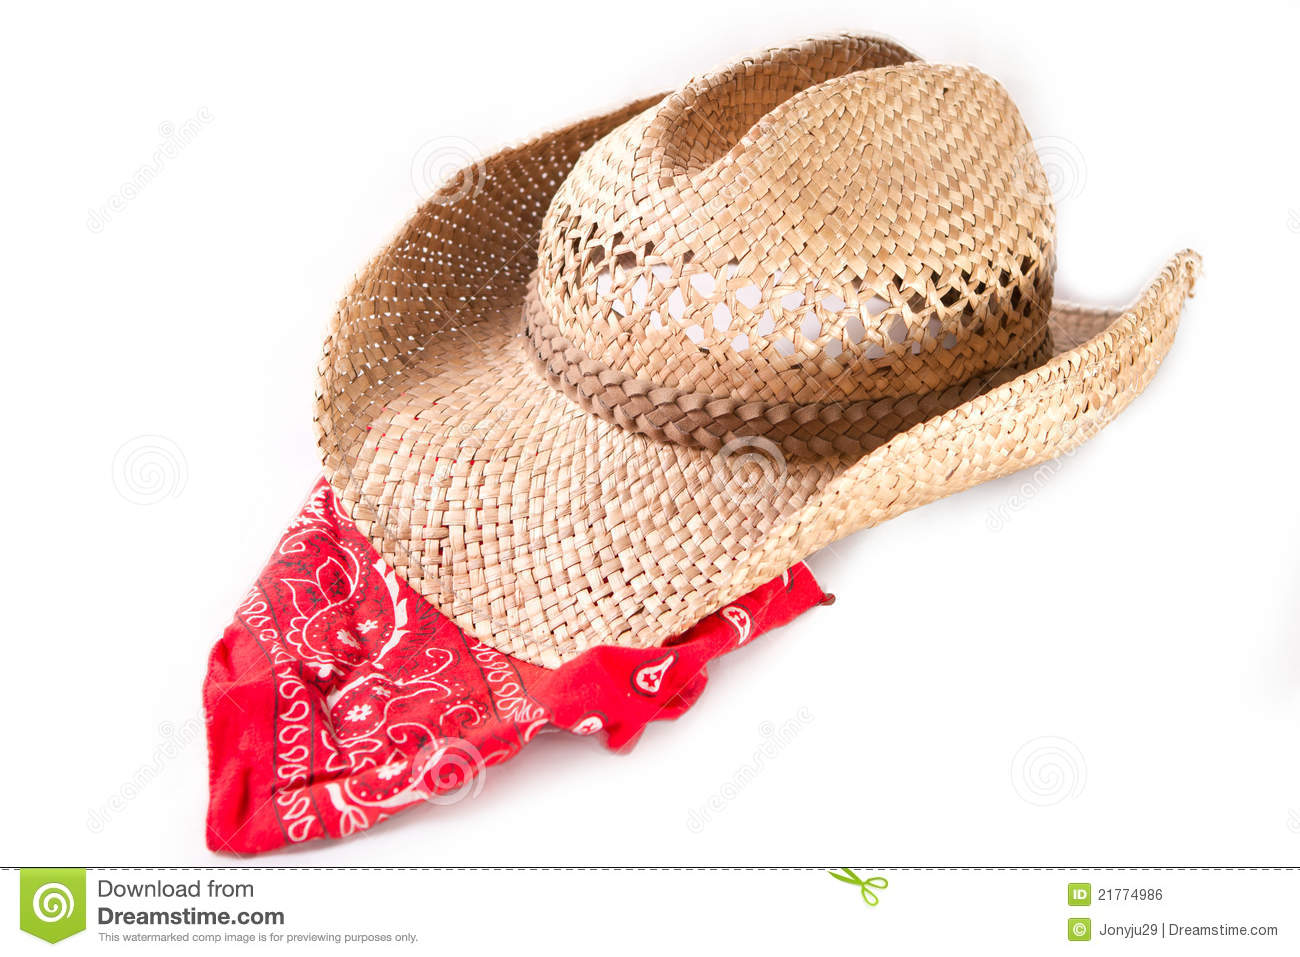 Cowboy hat and bandana stock photo. Image of country - 21774986 ed3c7533b17